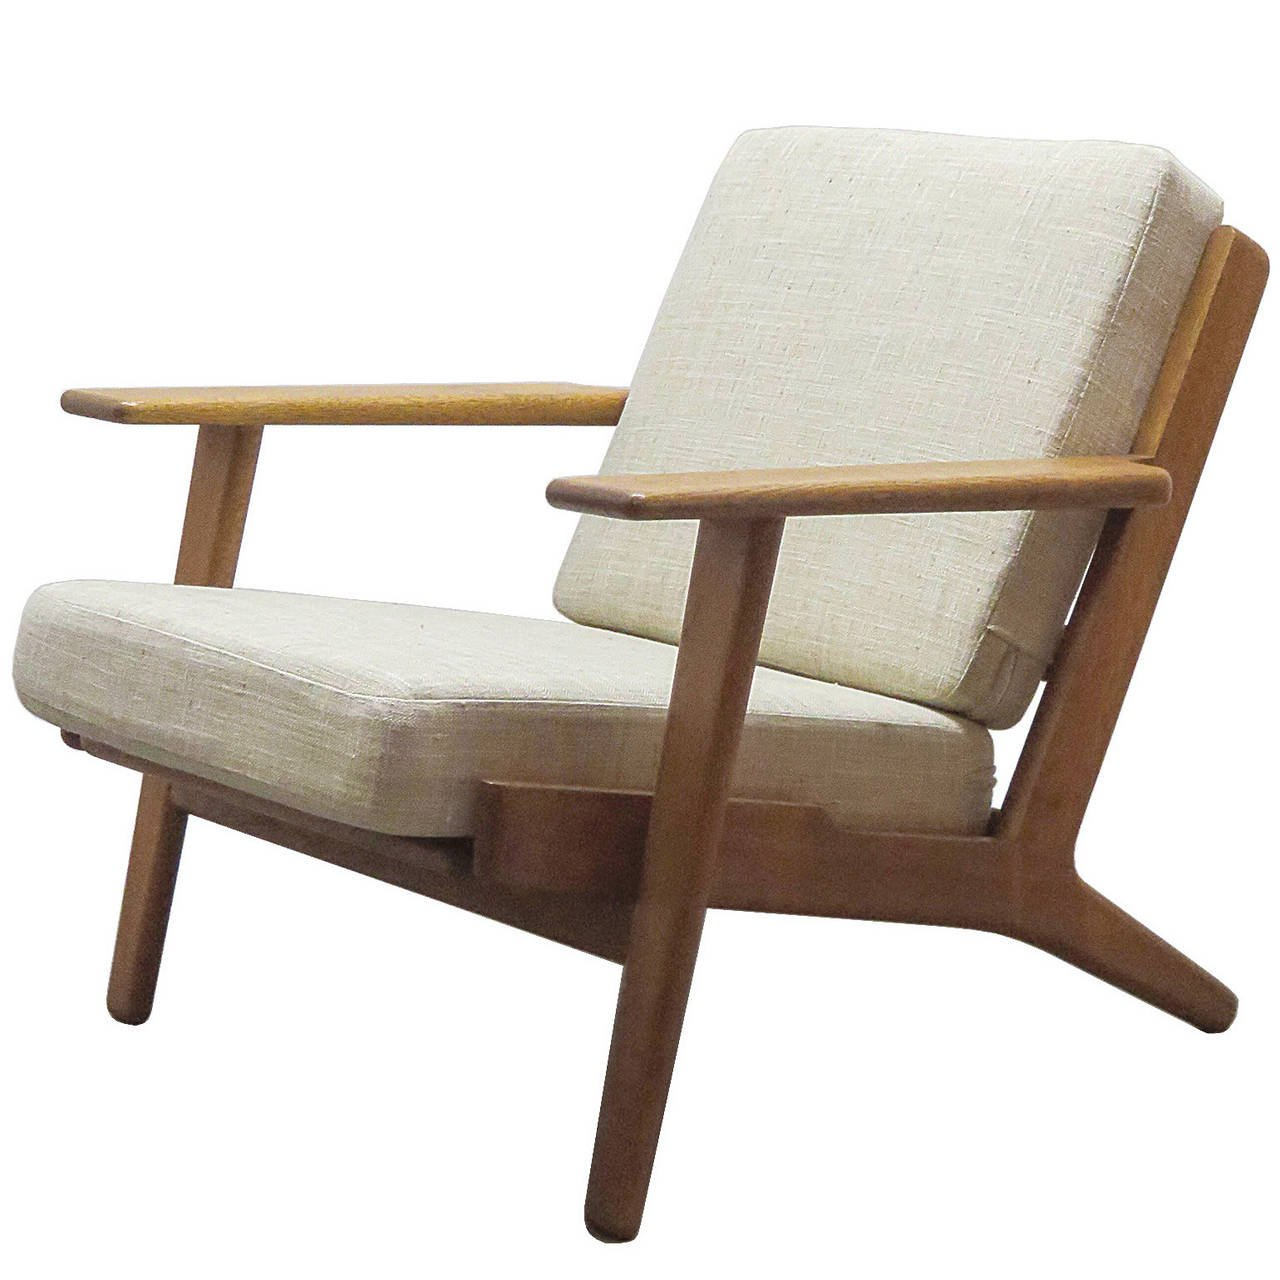 hans wegner chair